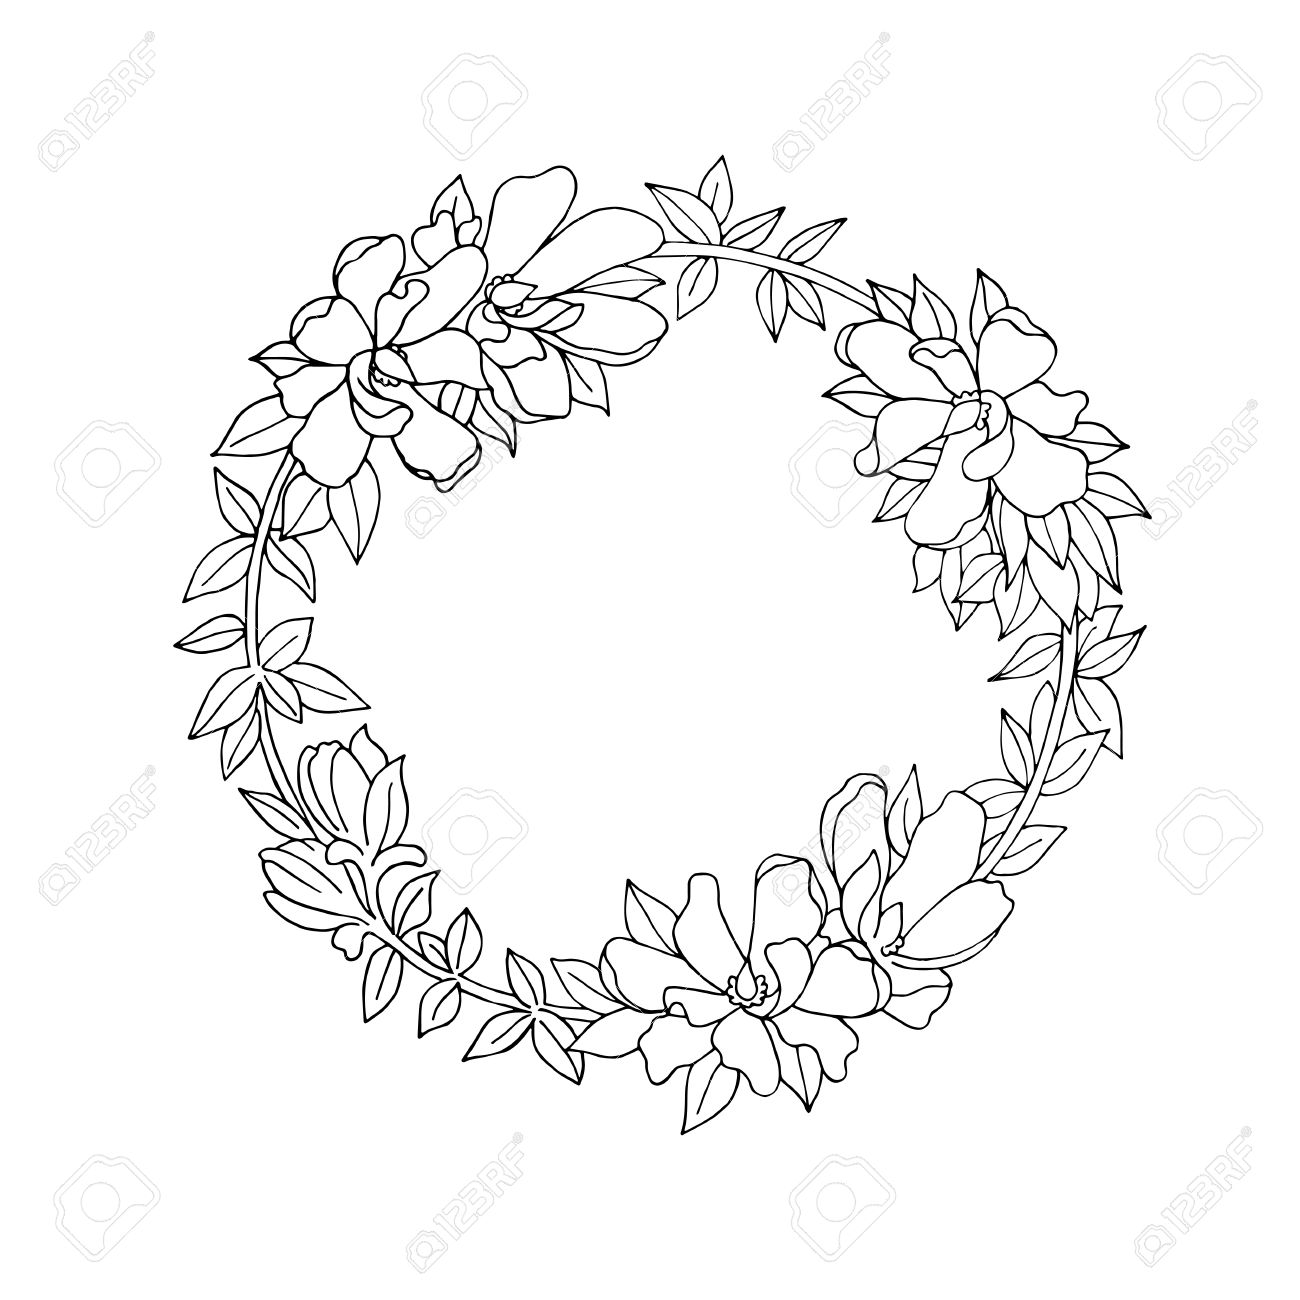 Black and white vintage detailed flower wreath.